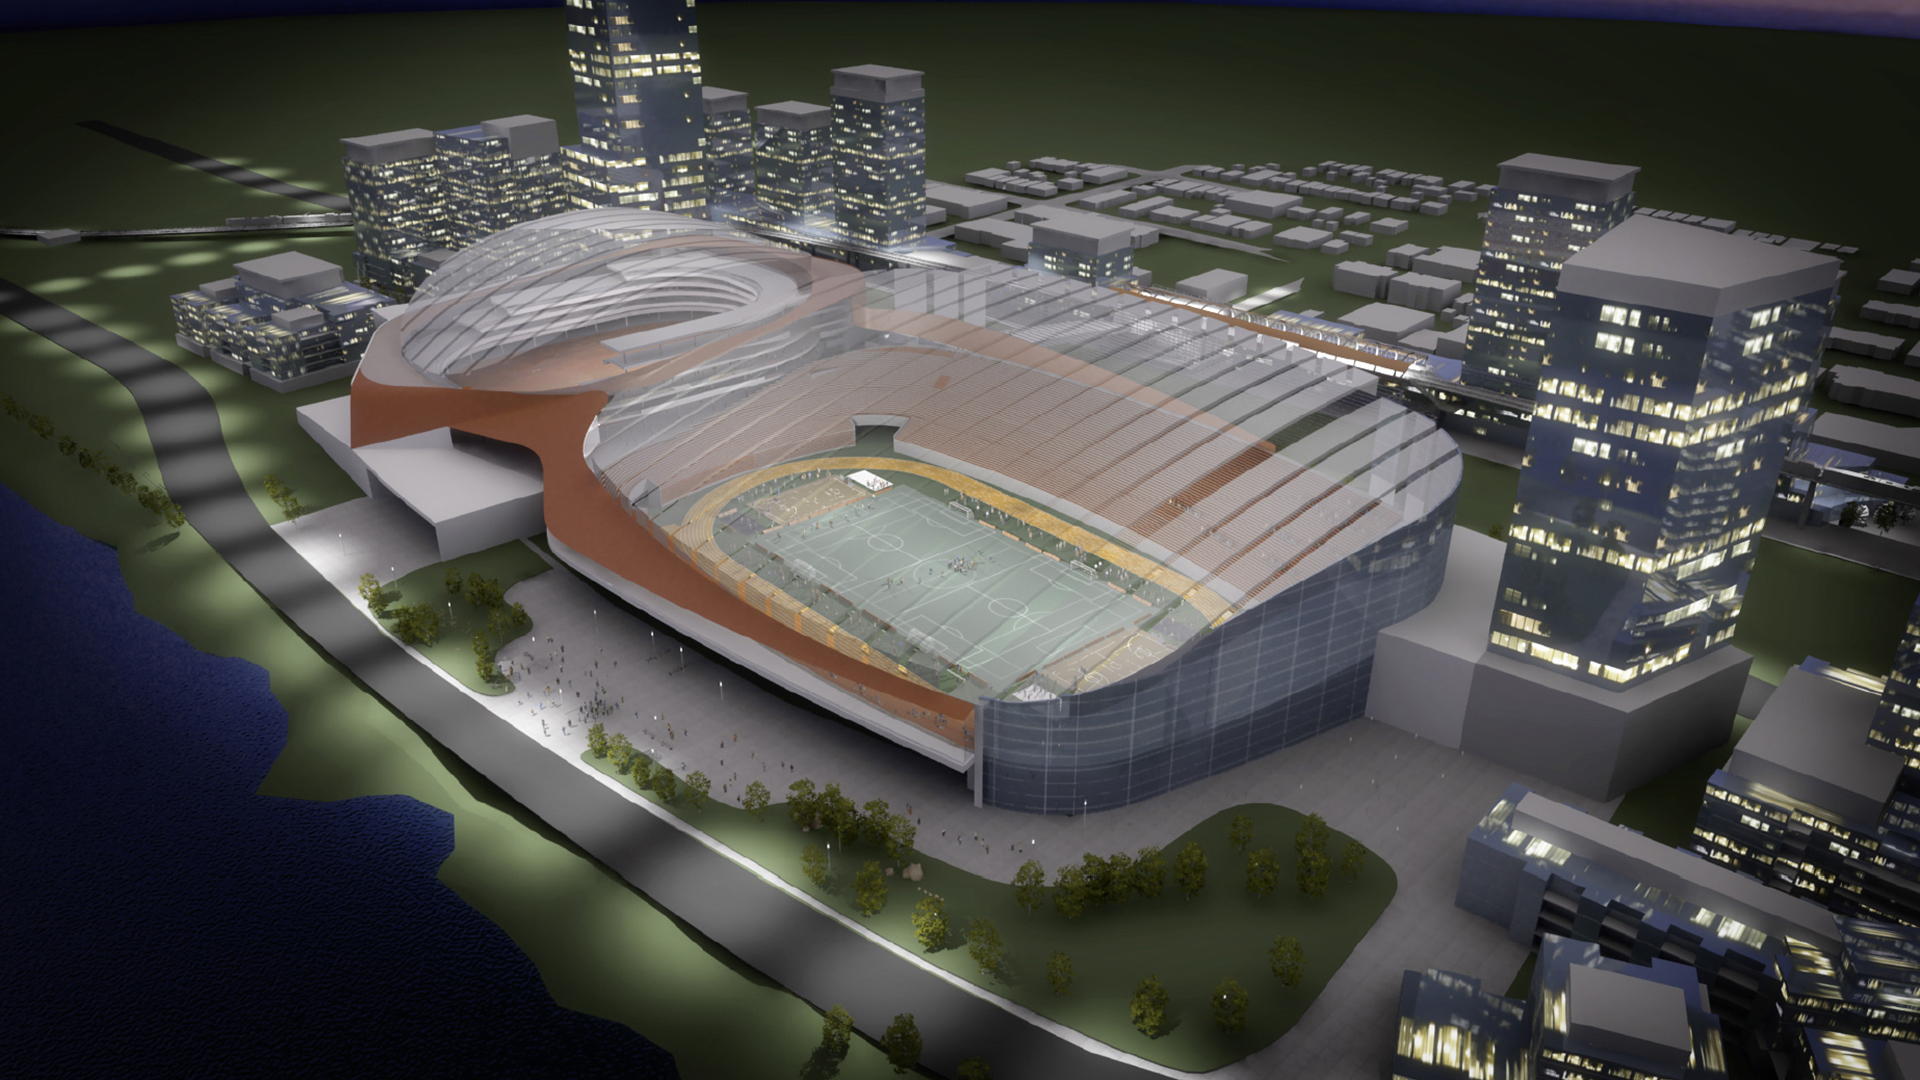 Calgarynext Plan Unveiled For New Arena Fieldhouse And Multi Use Complex 660 News